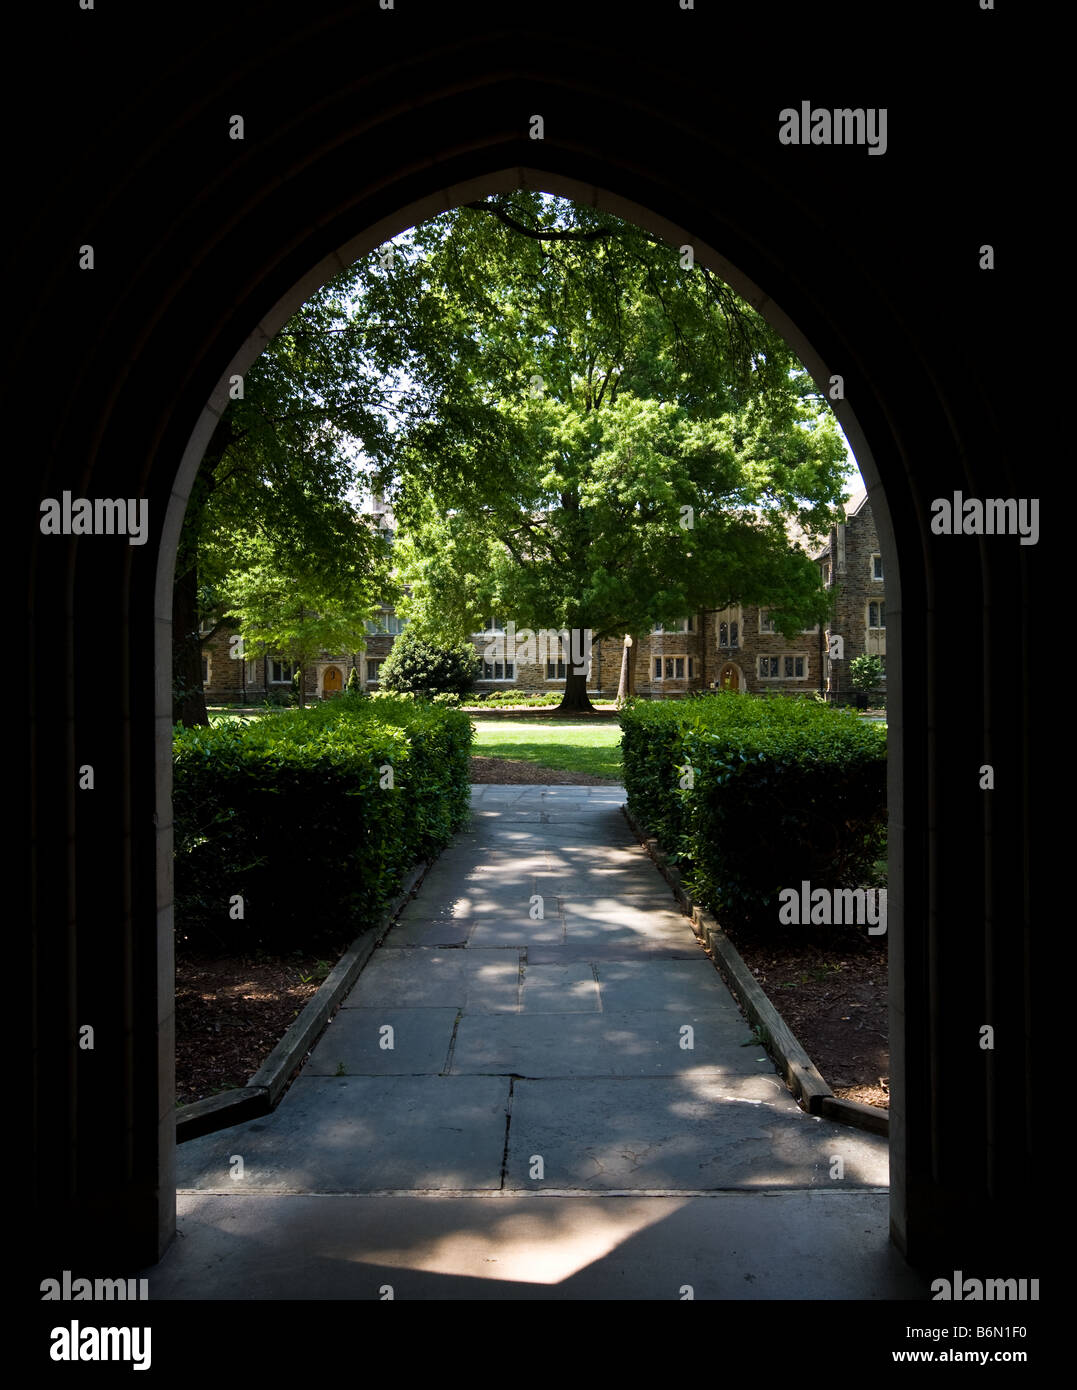 An archway between the dormitories on the Duke University campus. - Stock Image